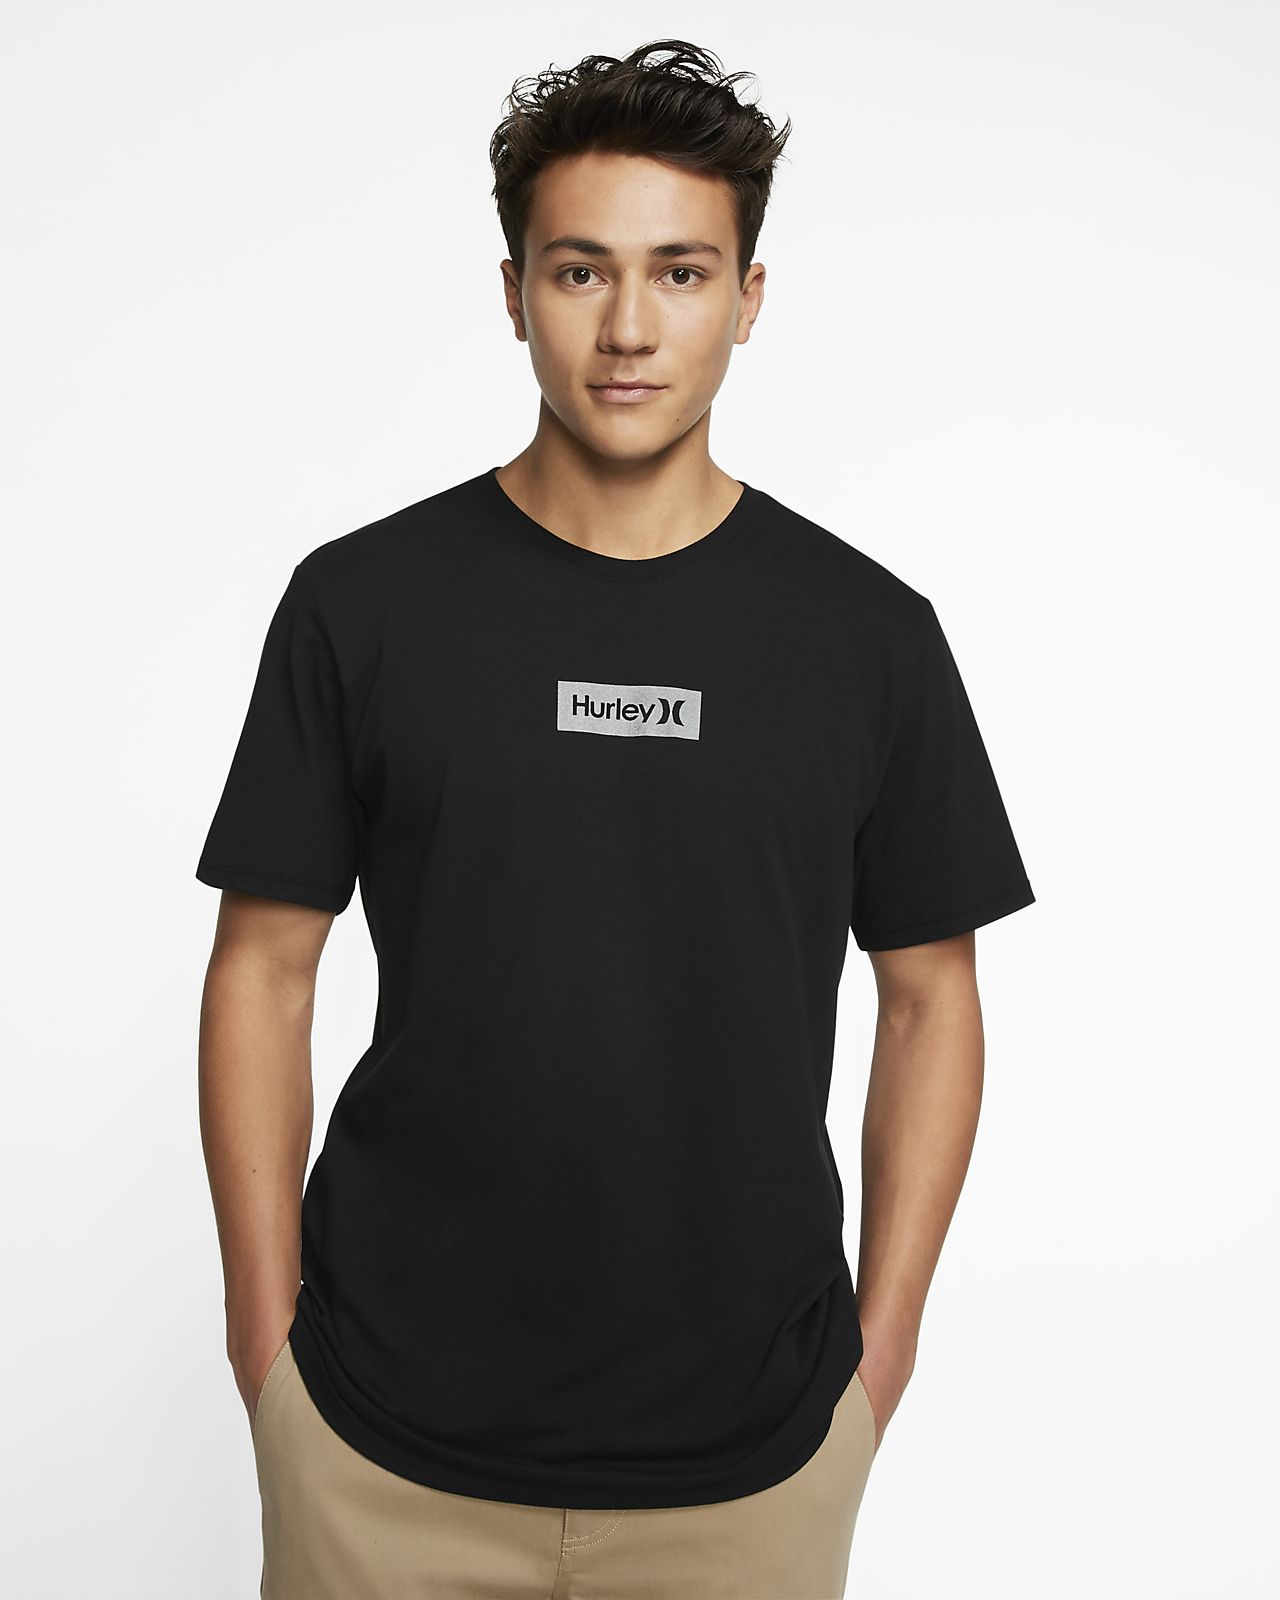 Hurley Dri-FIT One And Only Small Box Herren-T-Shirt